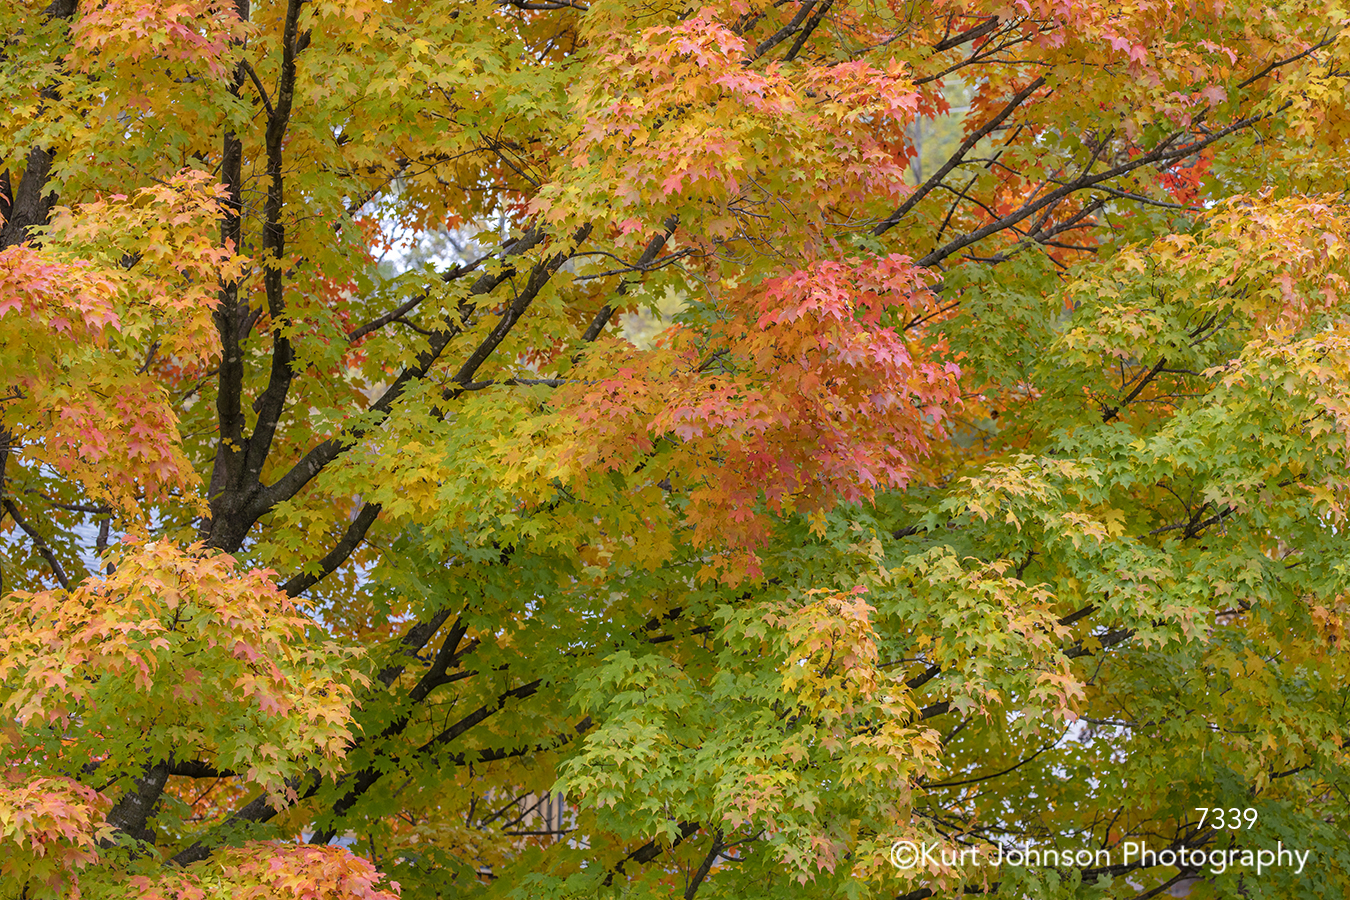 green orange yellow autumn fall tree trees branches colorful leaves